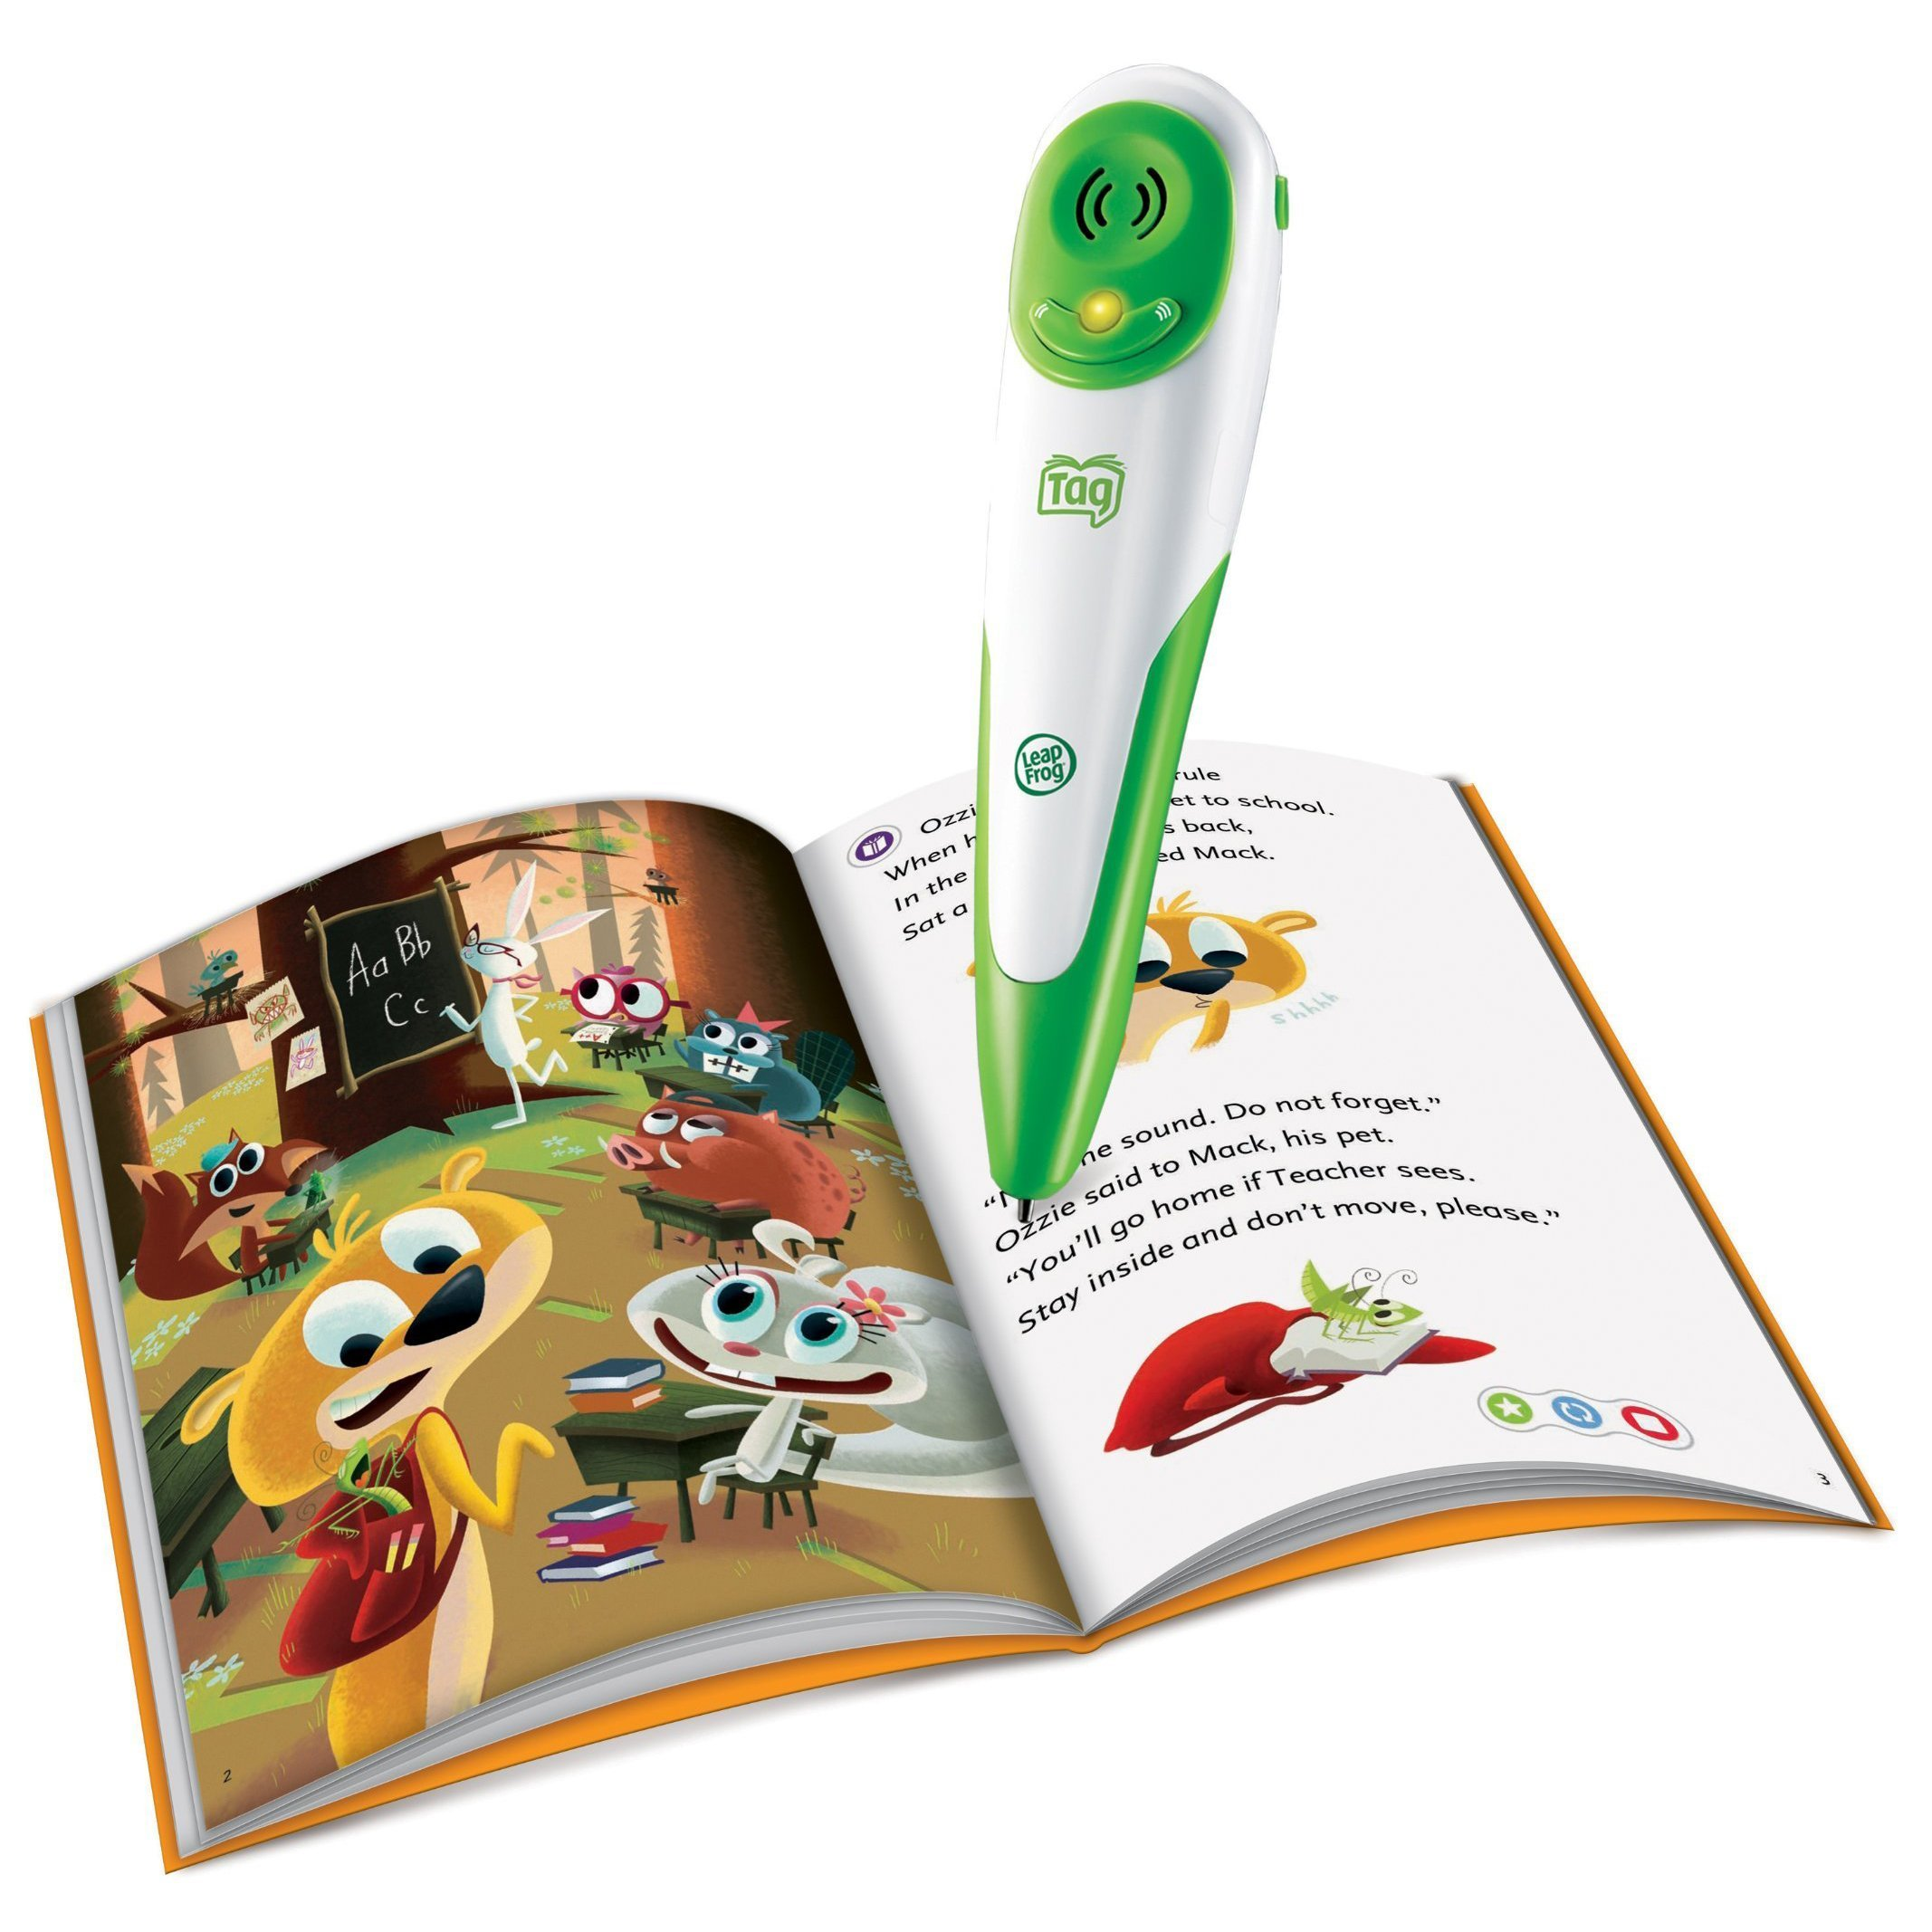 LeapFrog®  Tag Reading System (16 MB) by LeapFrog (Image #1)